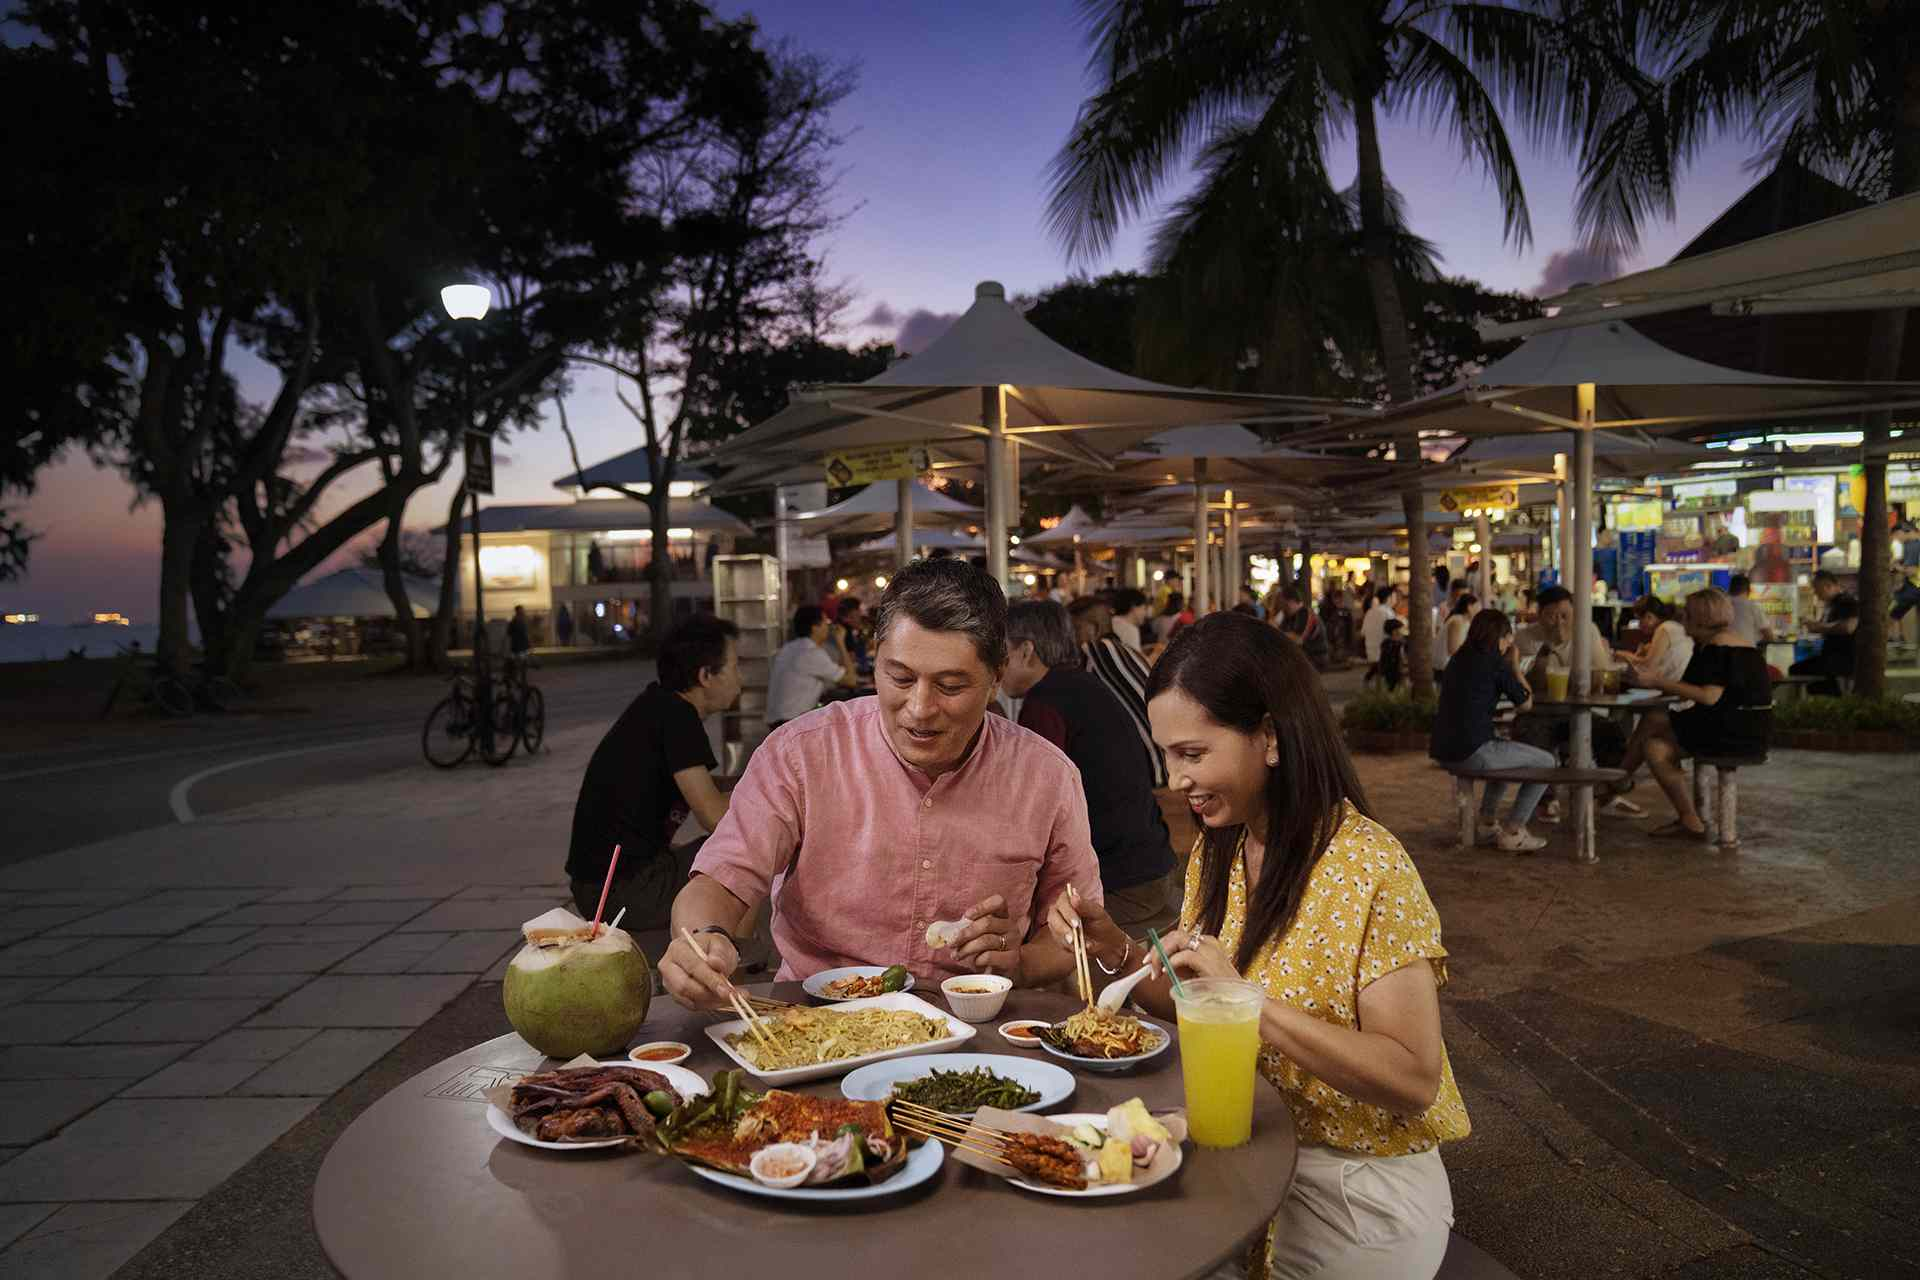 Couple eating at open-air hawker center, Singapore